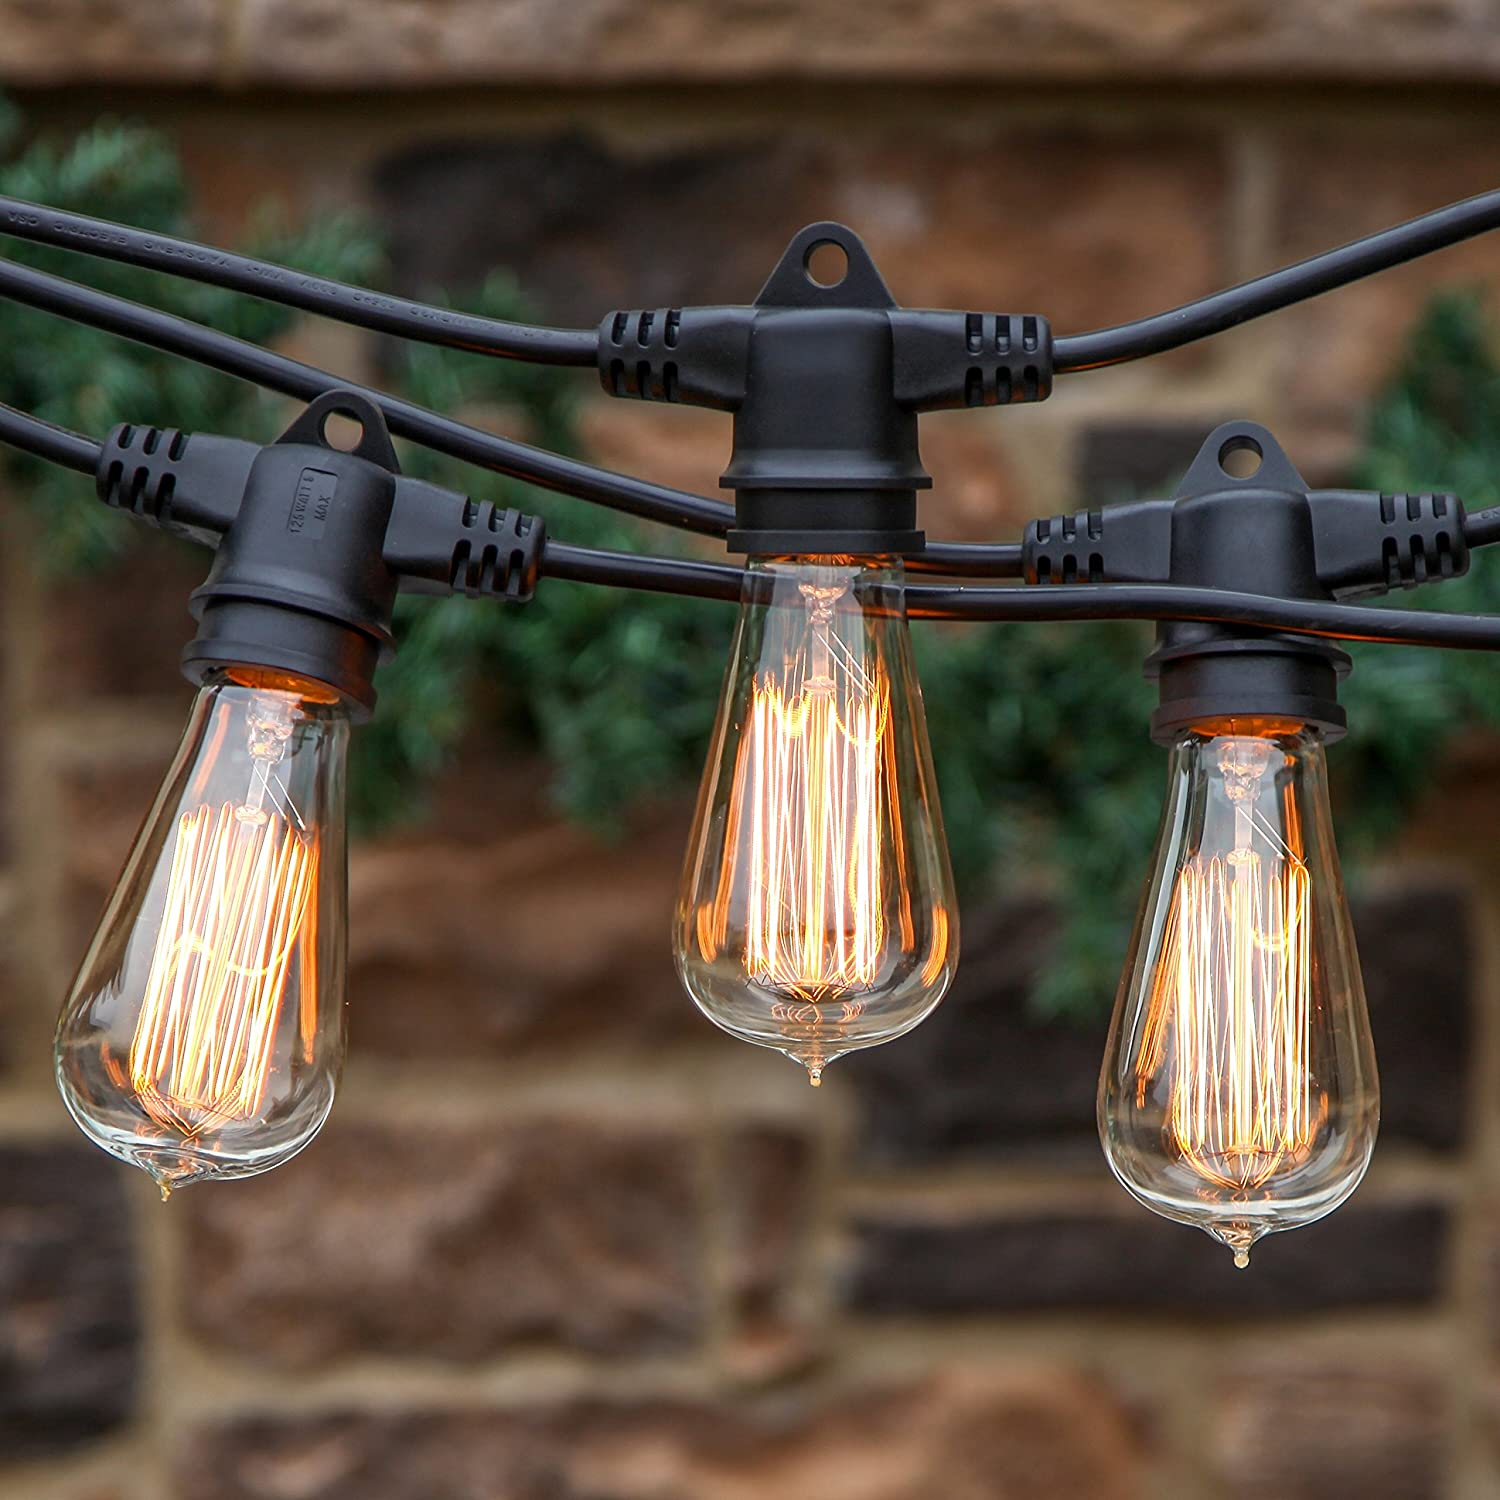 Ambience Pro Vintage Edition Outdoor Commercial String Lights with Nostalgic Edison Bulbs